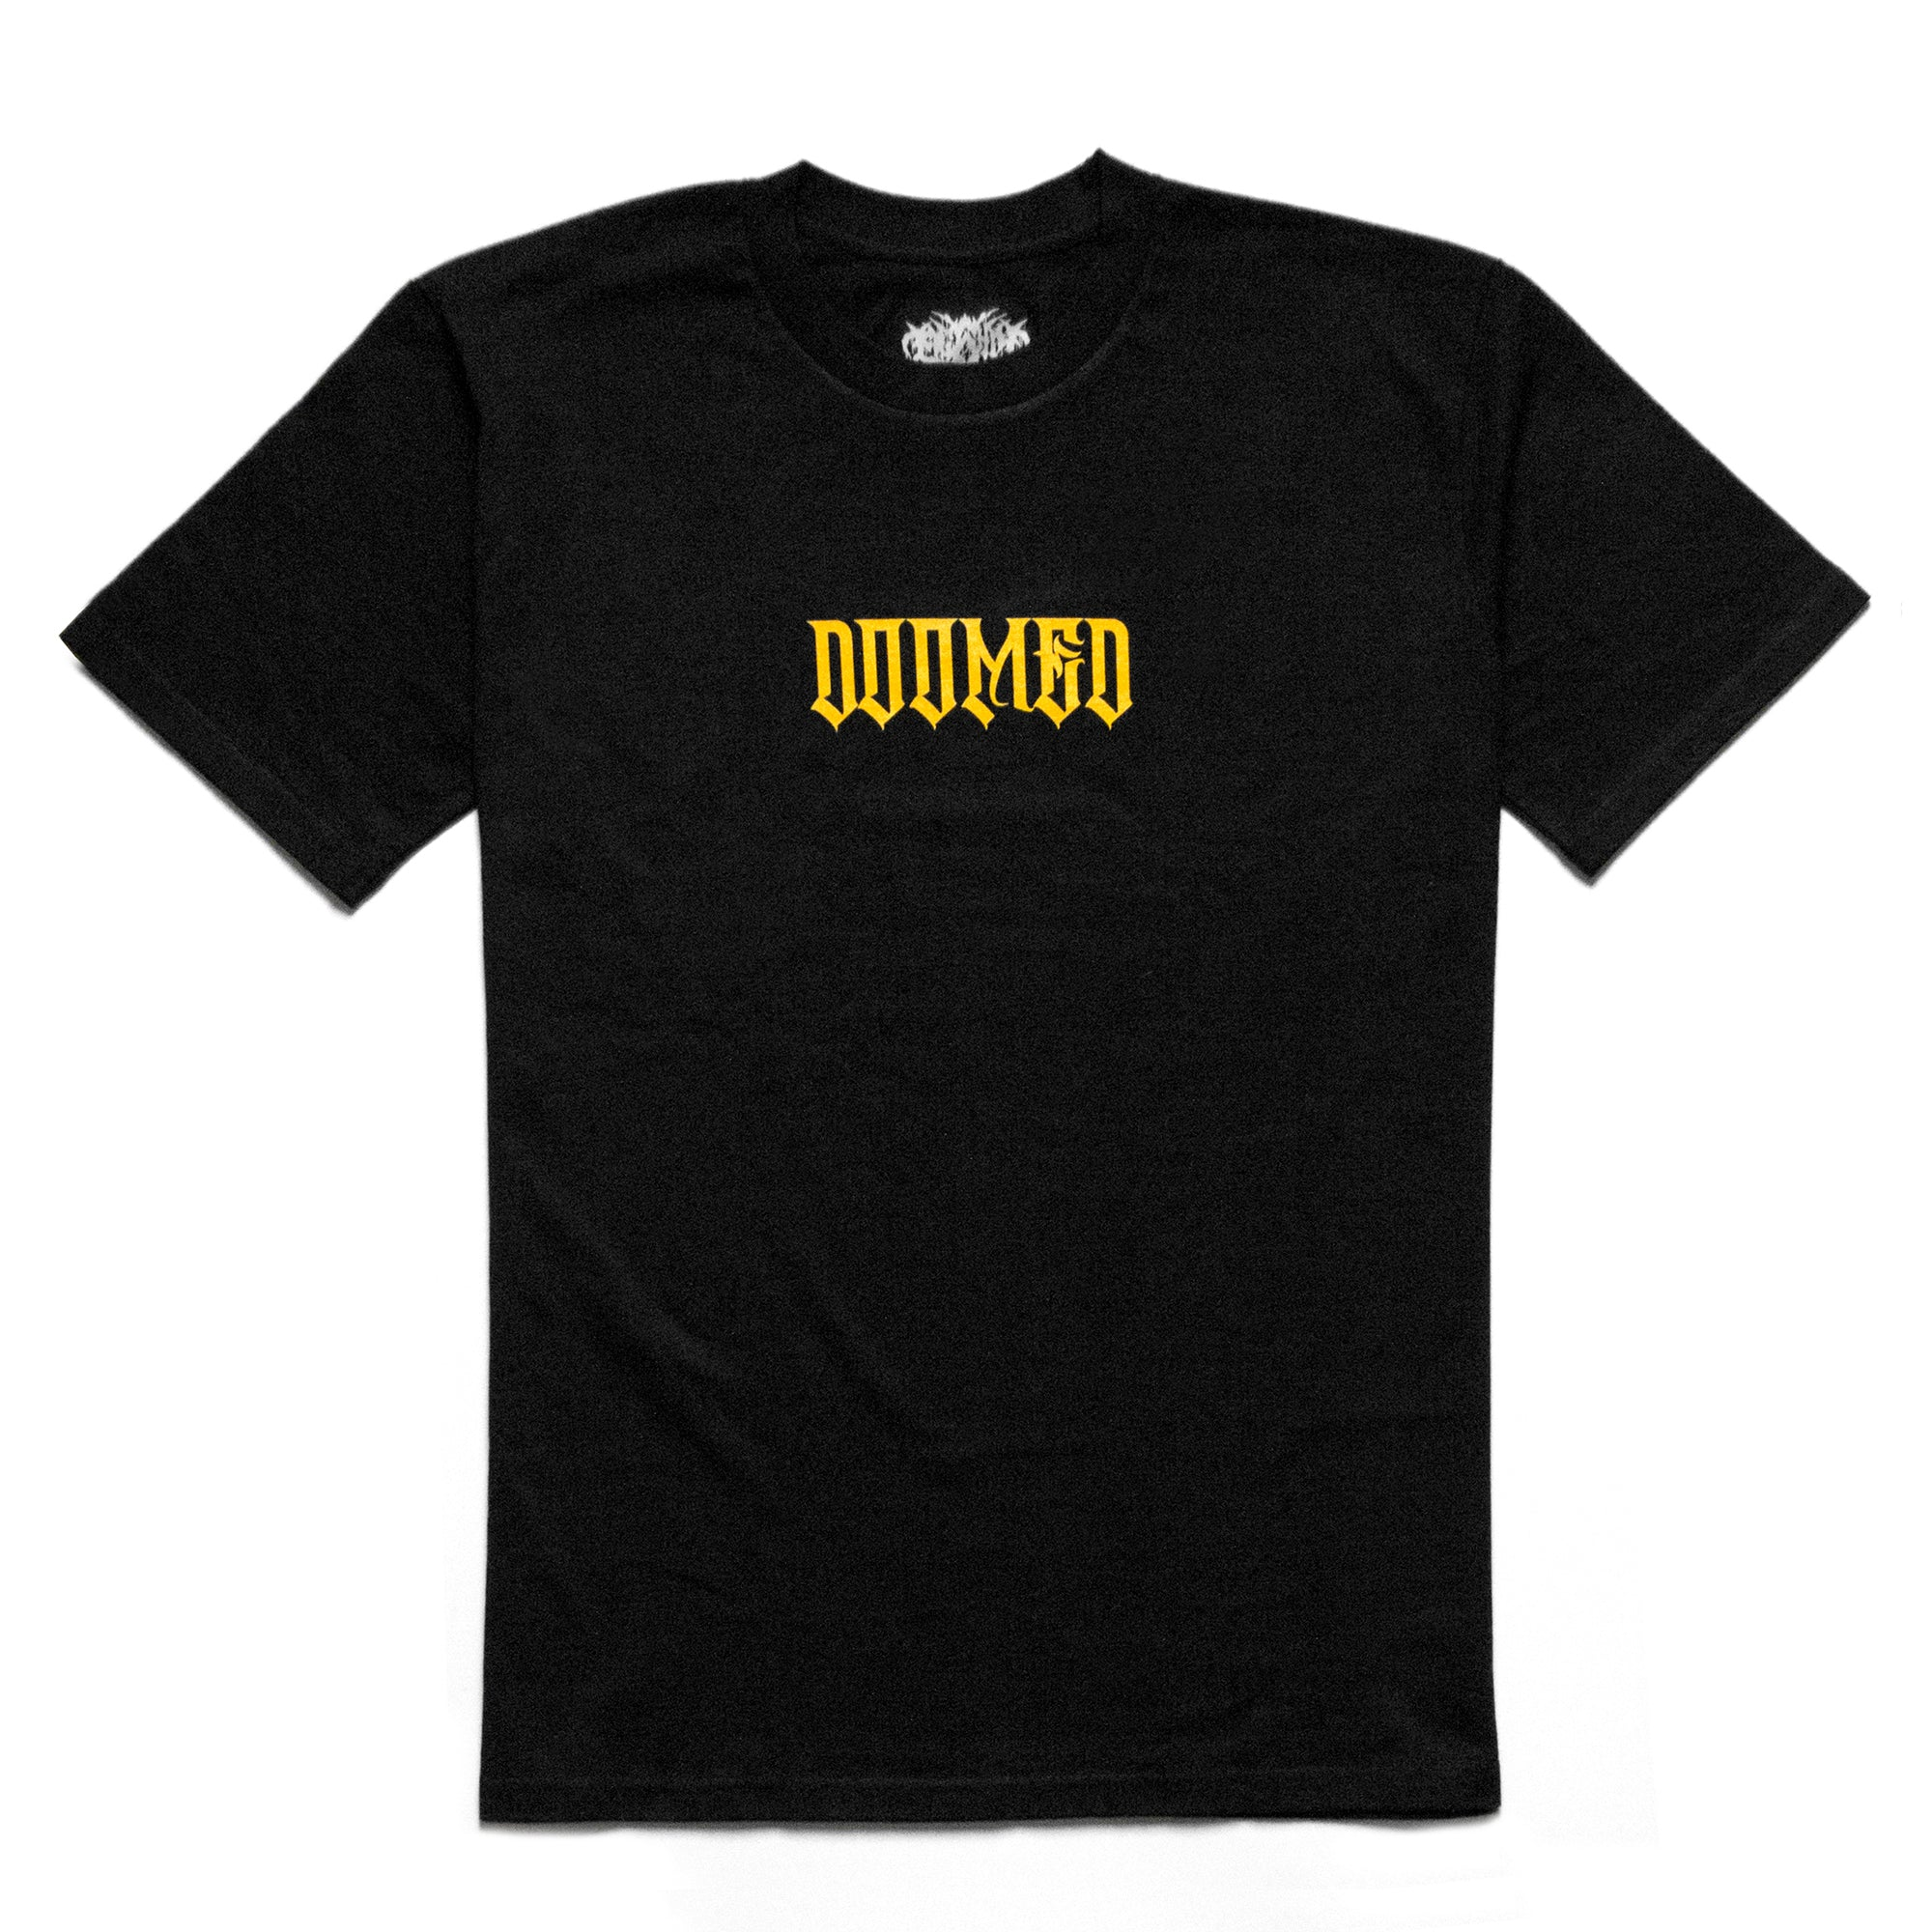 Doomed t-shirt in Black and Gold